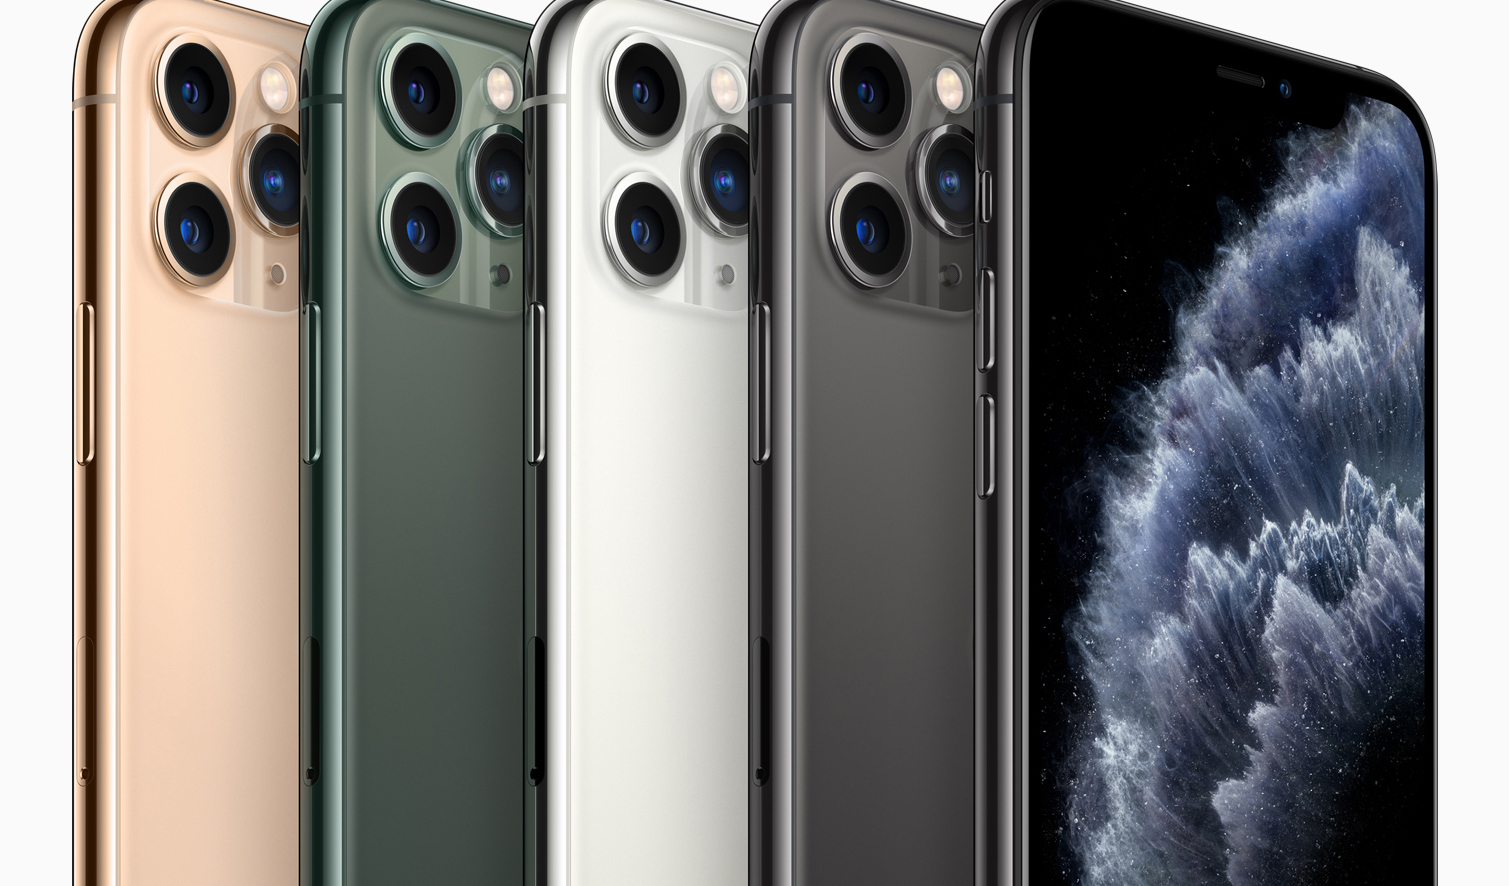 Apple details new iPhone 11, iPhone 11 Pro